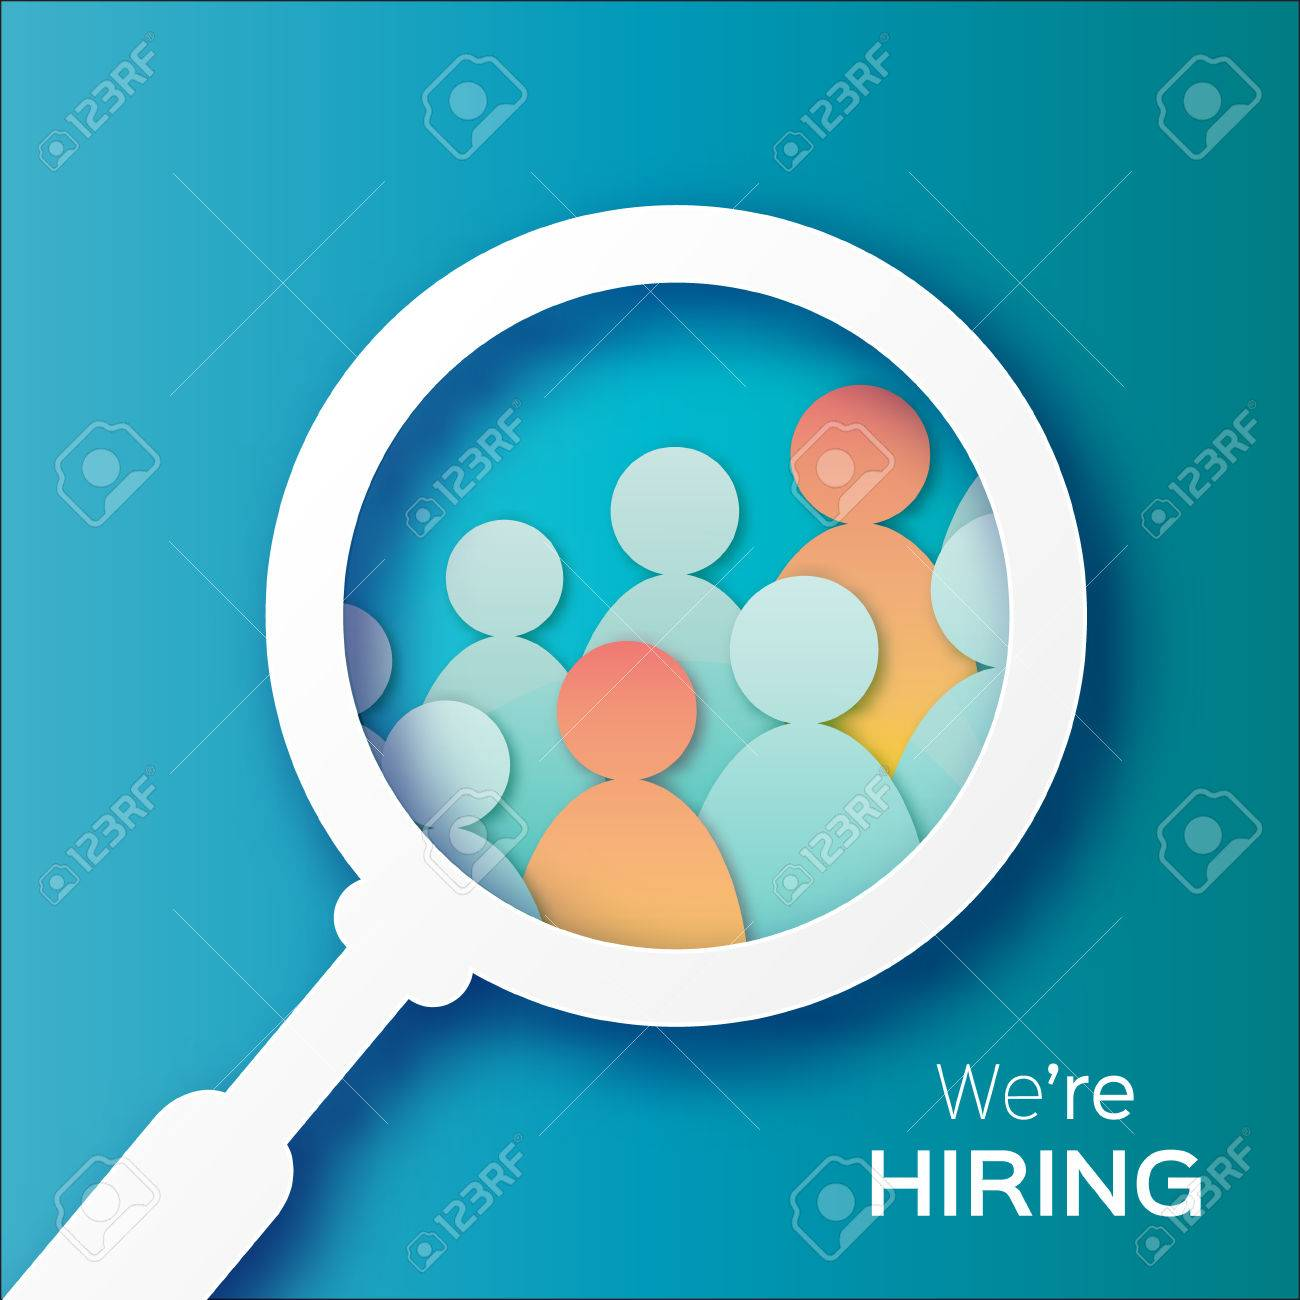 Choosing the talented person for hiring. HR job seeking concepts. The choice of the best suited employee - 55944150